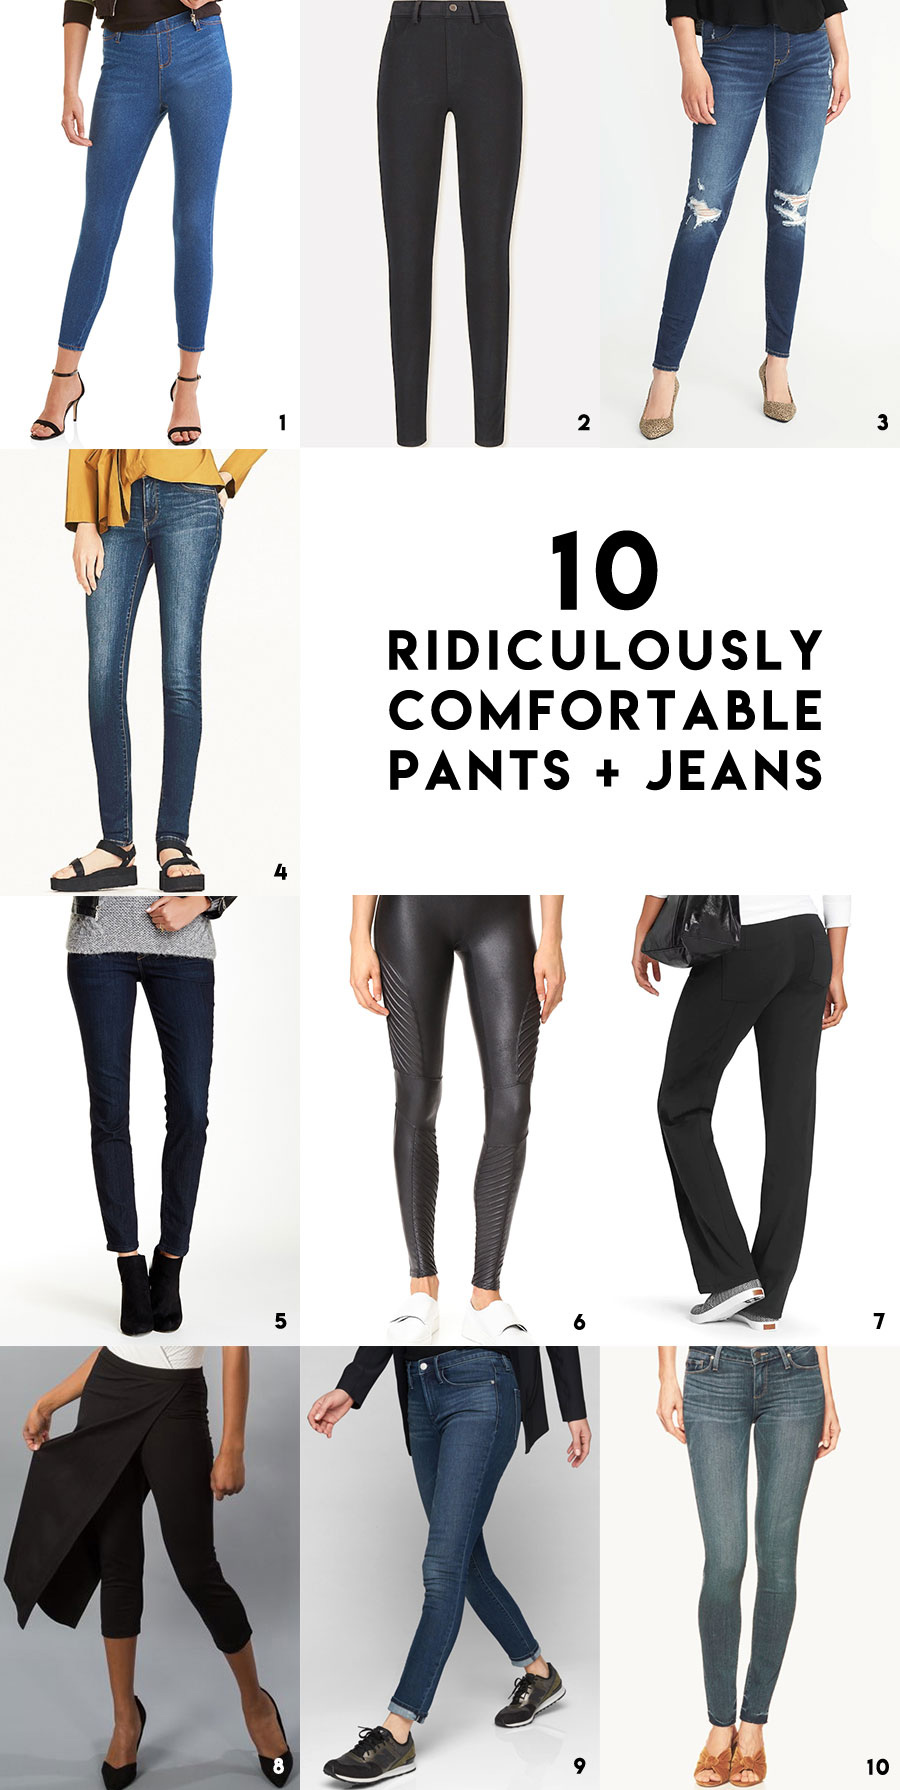 most-comfortable-pants-jeans.jpg